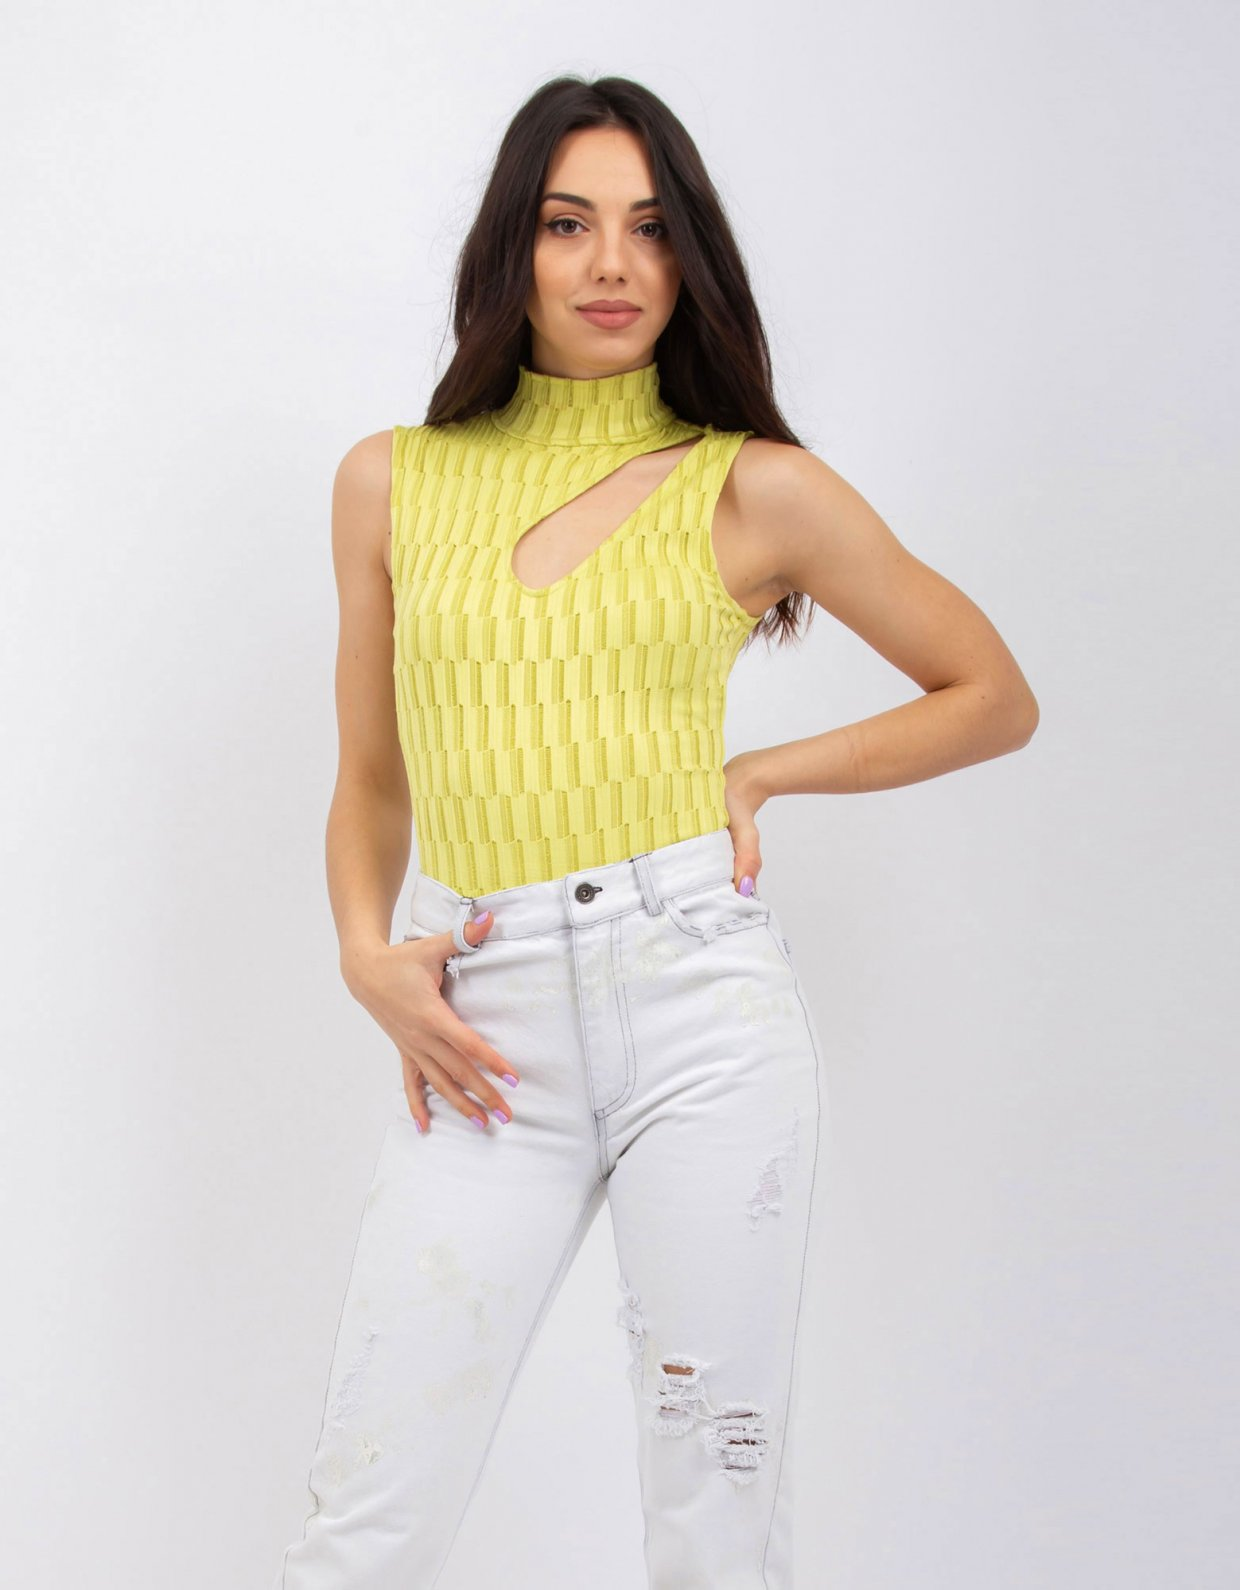 Kendall + Kylie Staggered knit stipe green lime bodysuit